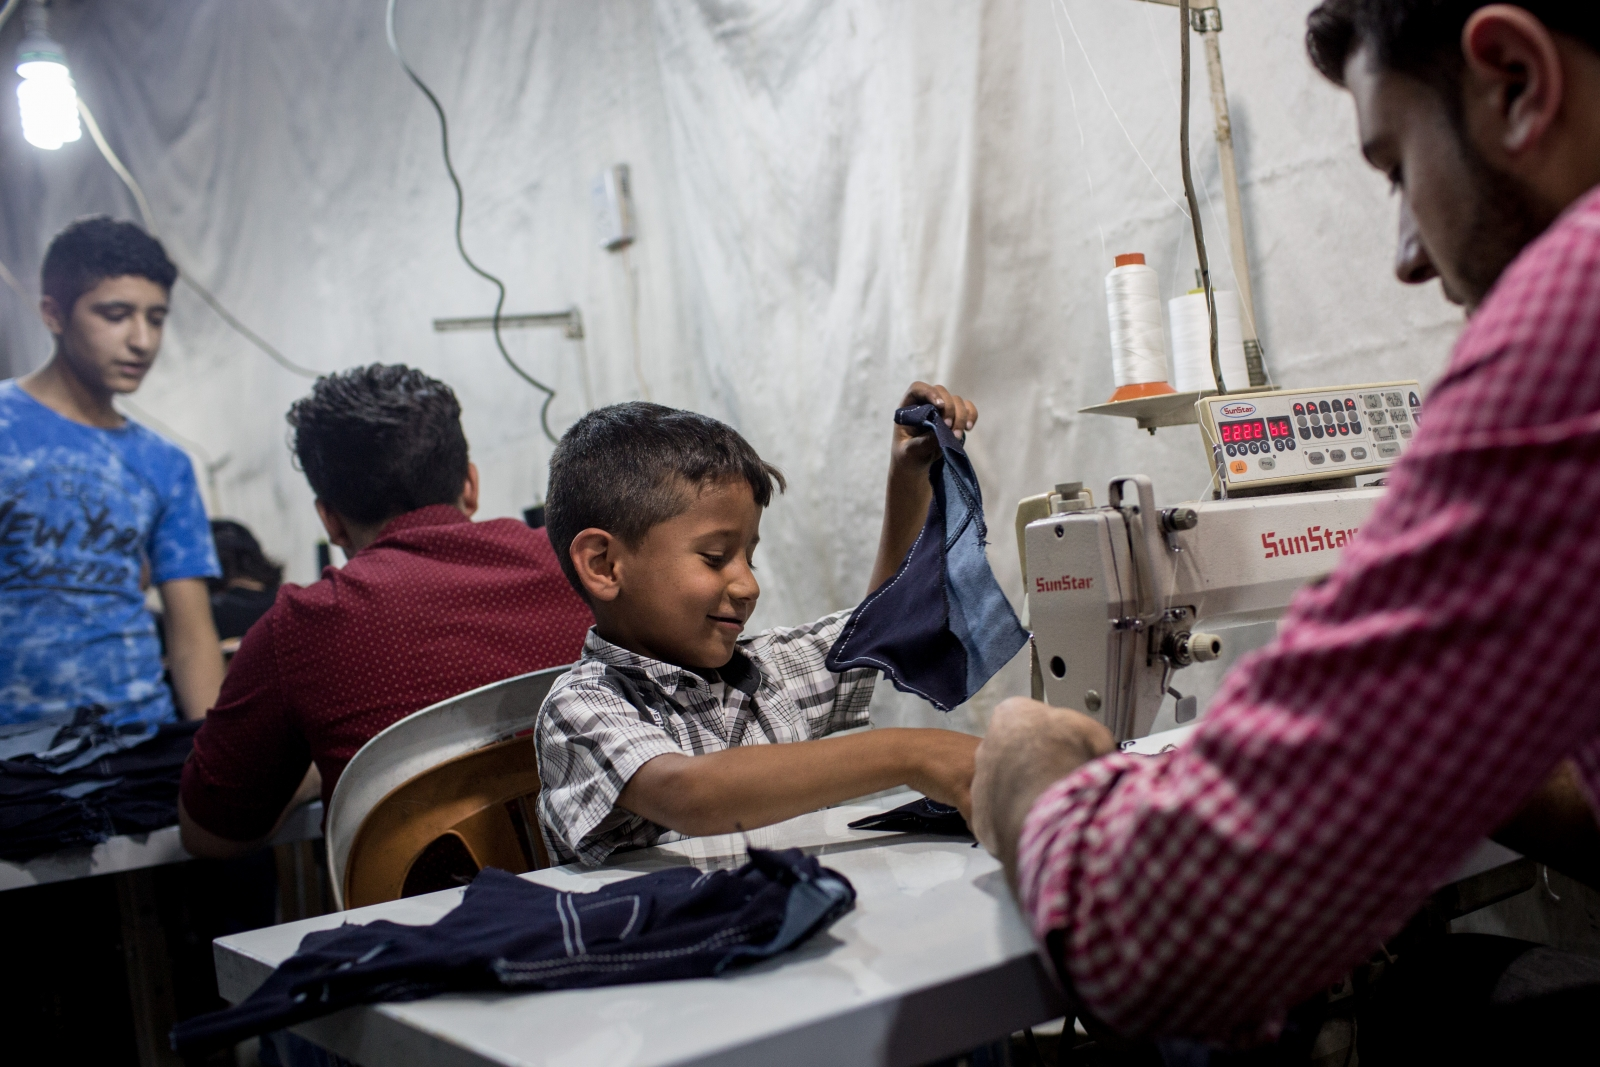 Syrian refugee in garment factory